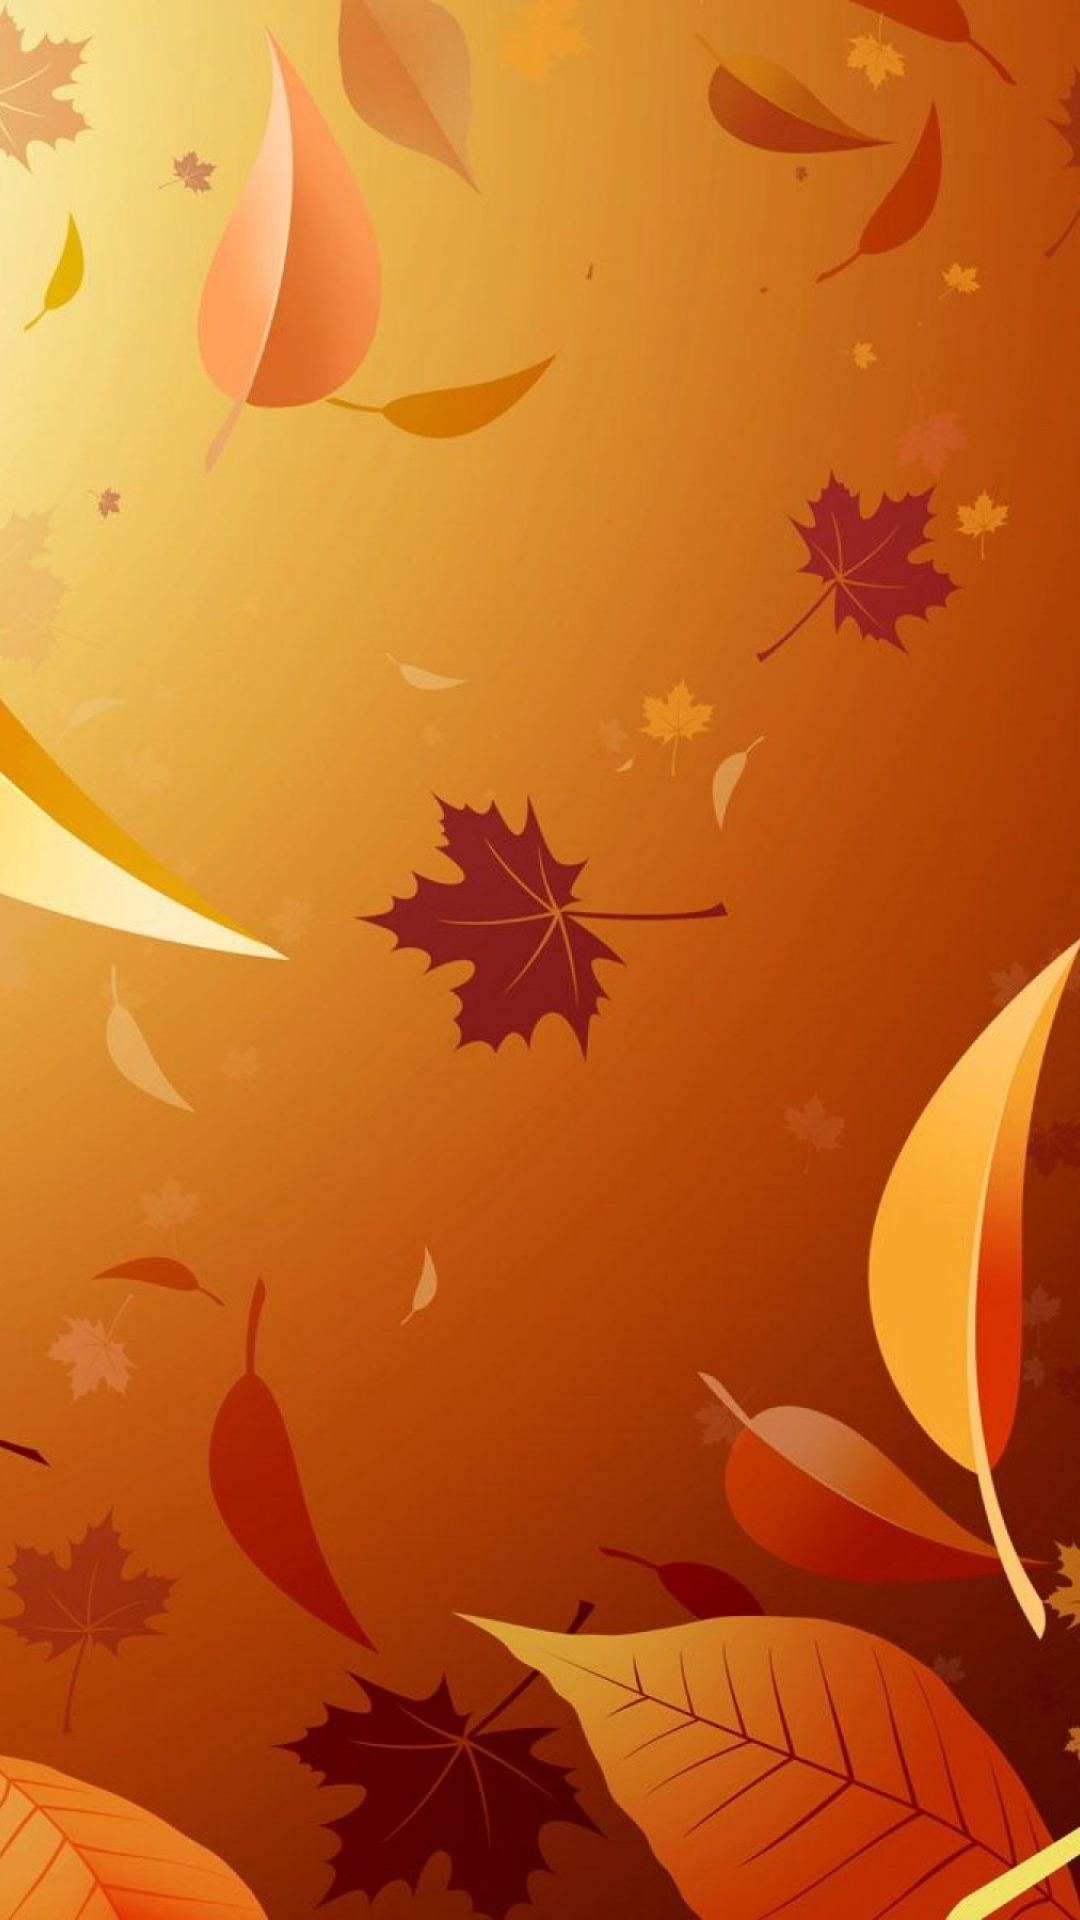 Autumn-Leaves-Backgrounds-1080x1920-Need-iPhone-S-Plus-Background-for-IPhoneSPl-wallpaper-wp3602824